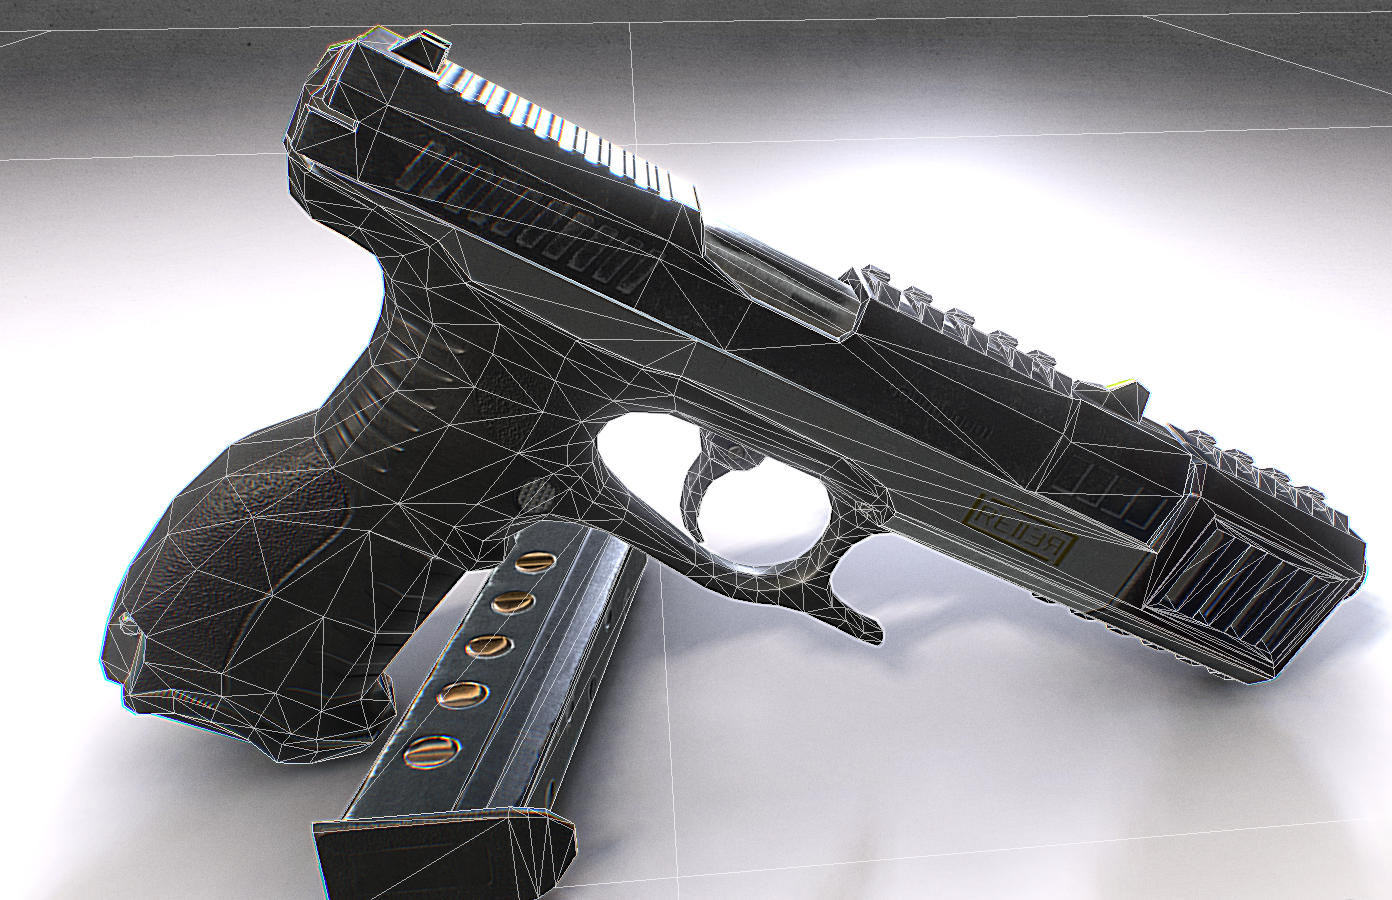 9mm Pistol Model By: Slava Zemlyanik Free Download This file